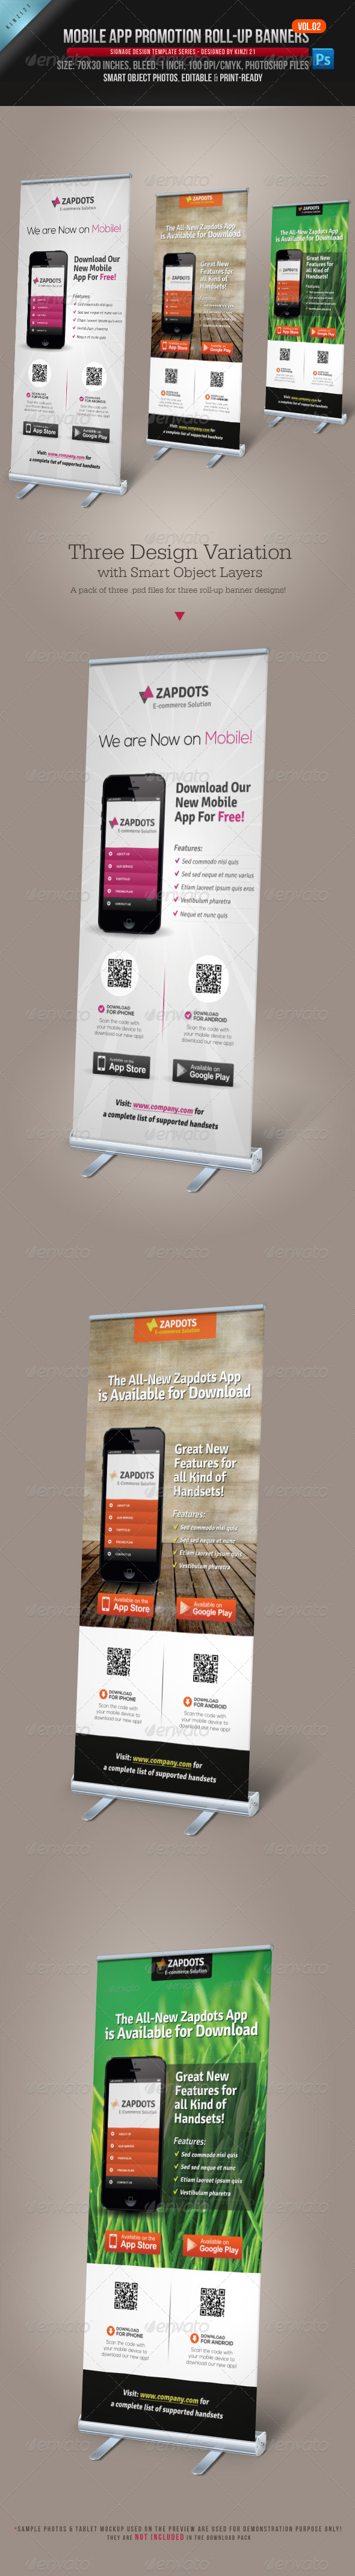 Mobile App Promotion Roll-up Banners Vol.02 - Signage Print Templates